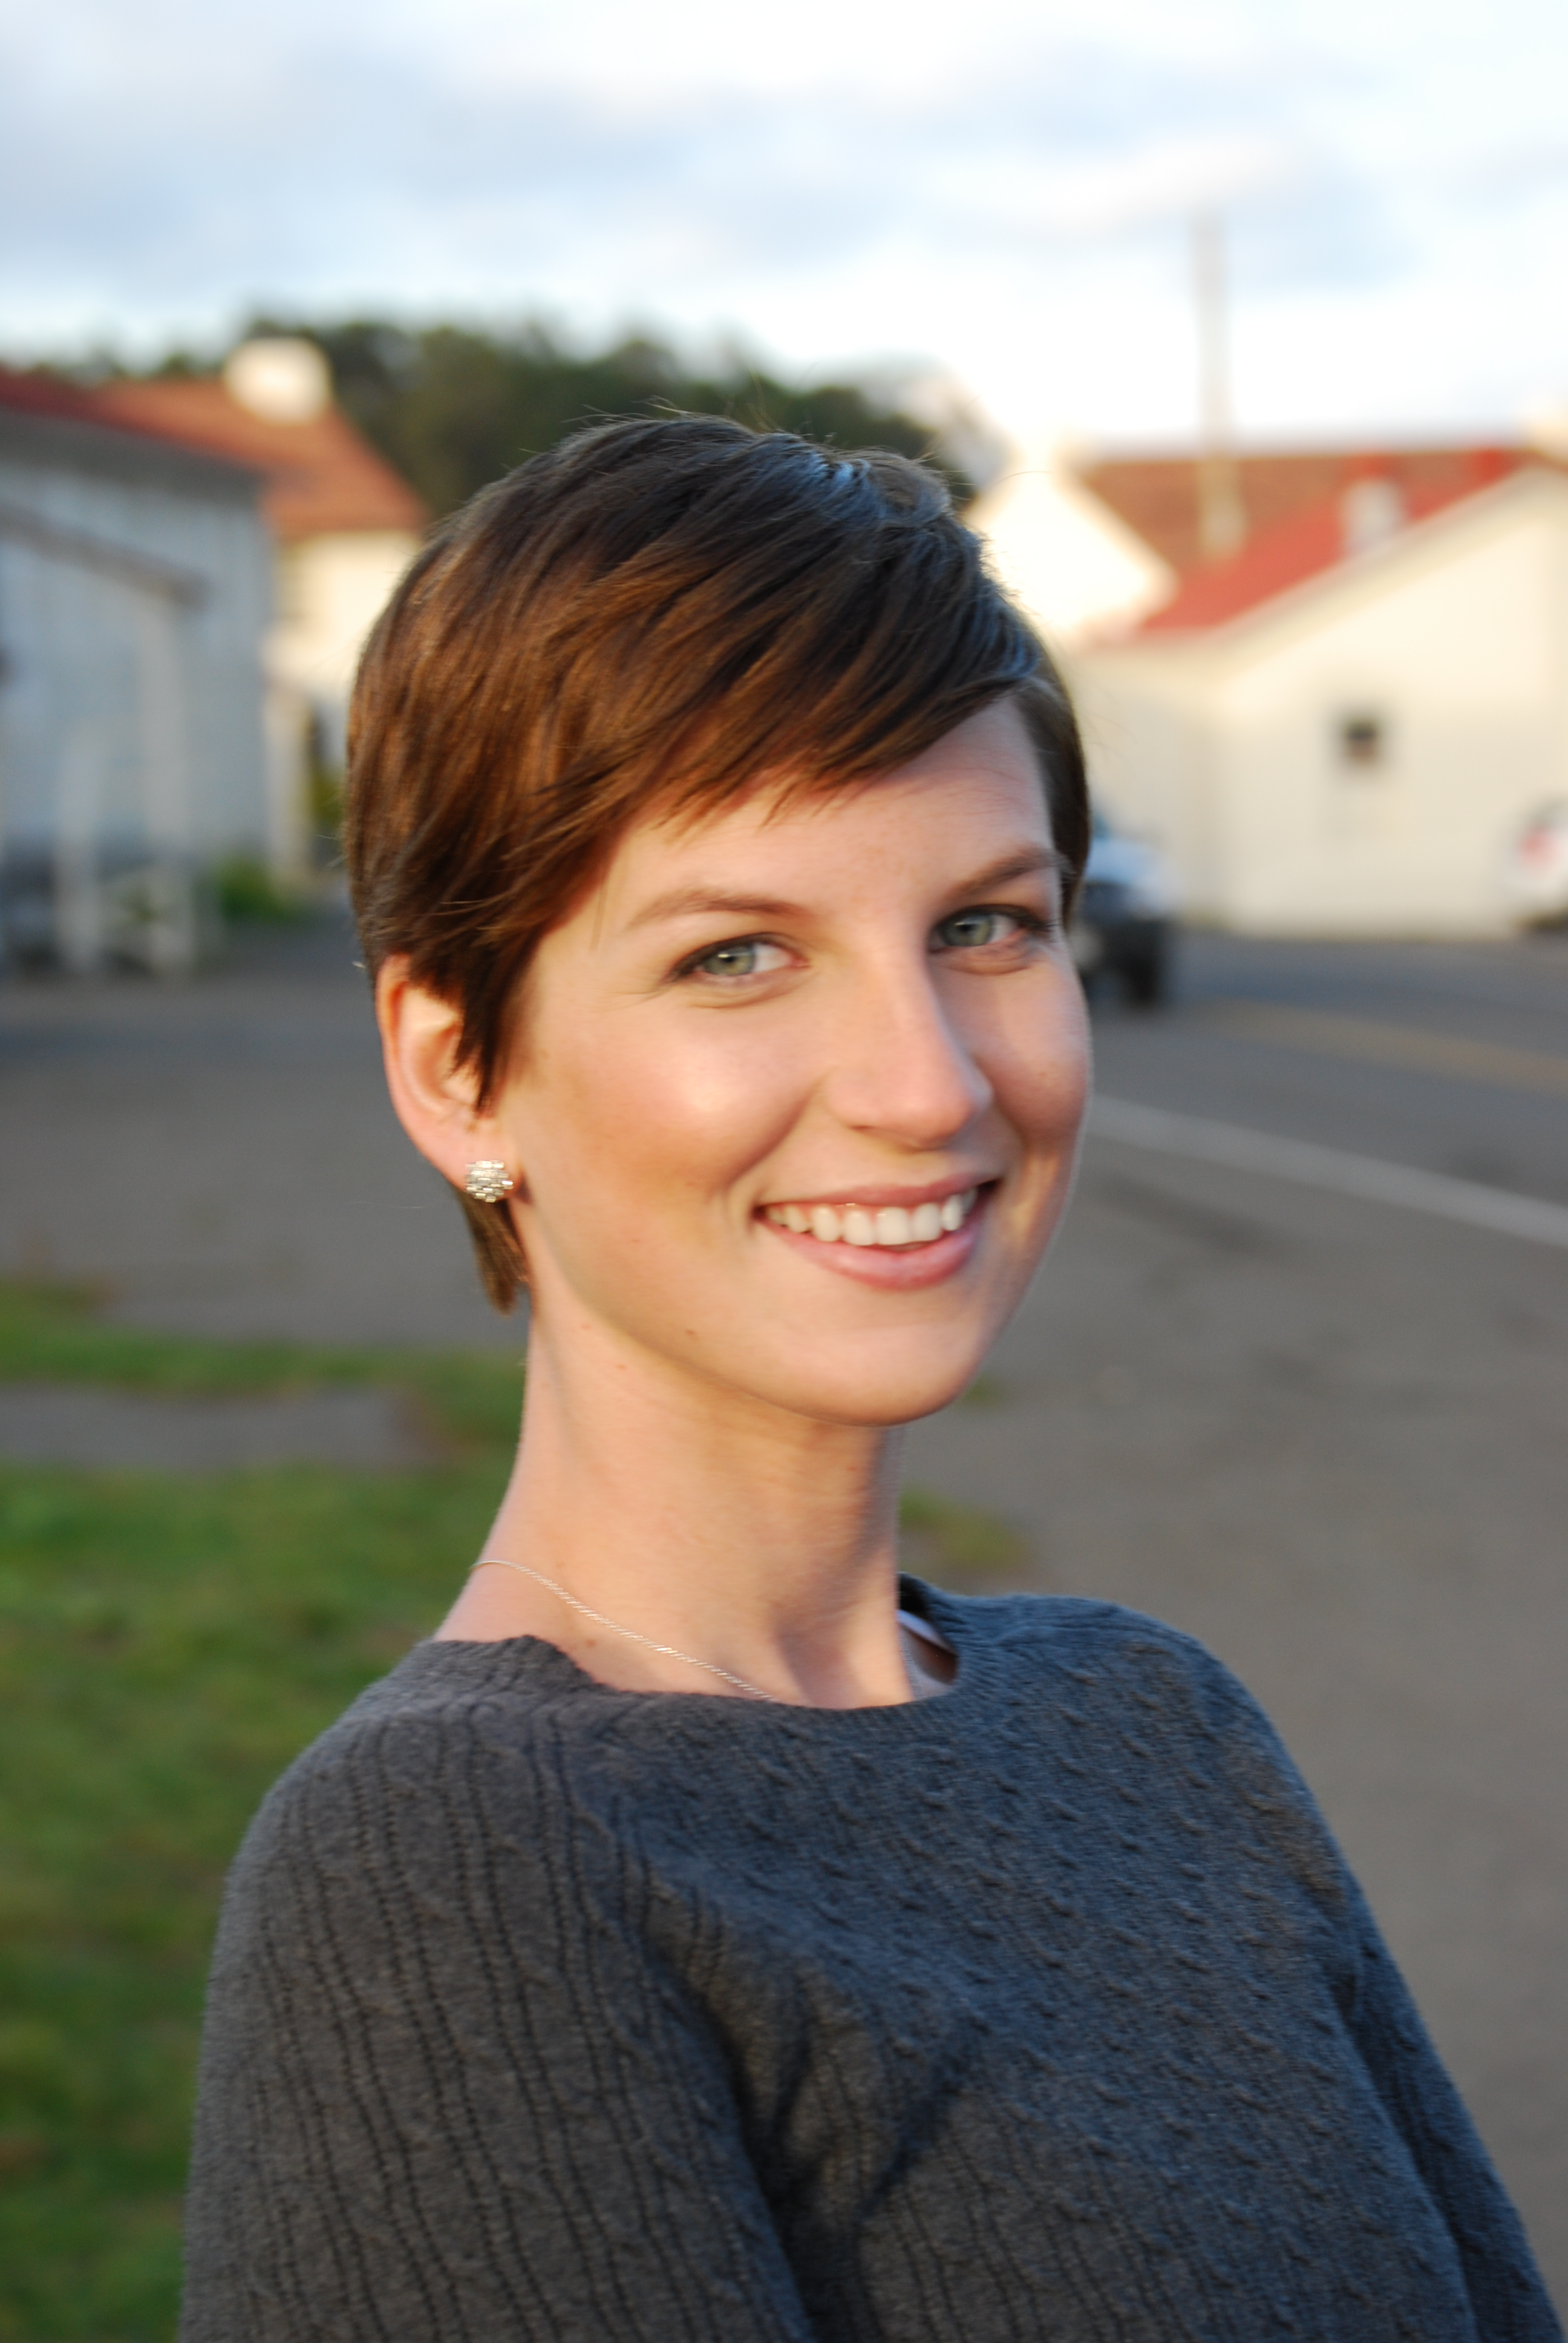 Fantastic Blending Beautiful How To Gracefully Grow Out A Pixie Cut Short Hairstyles Gunalazisus